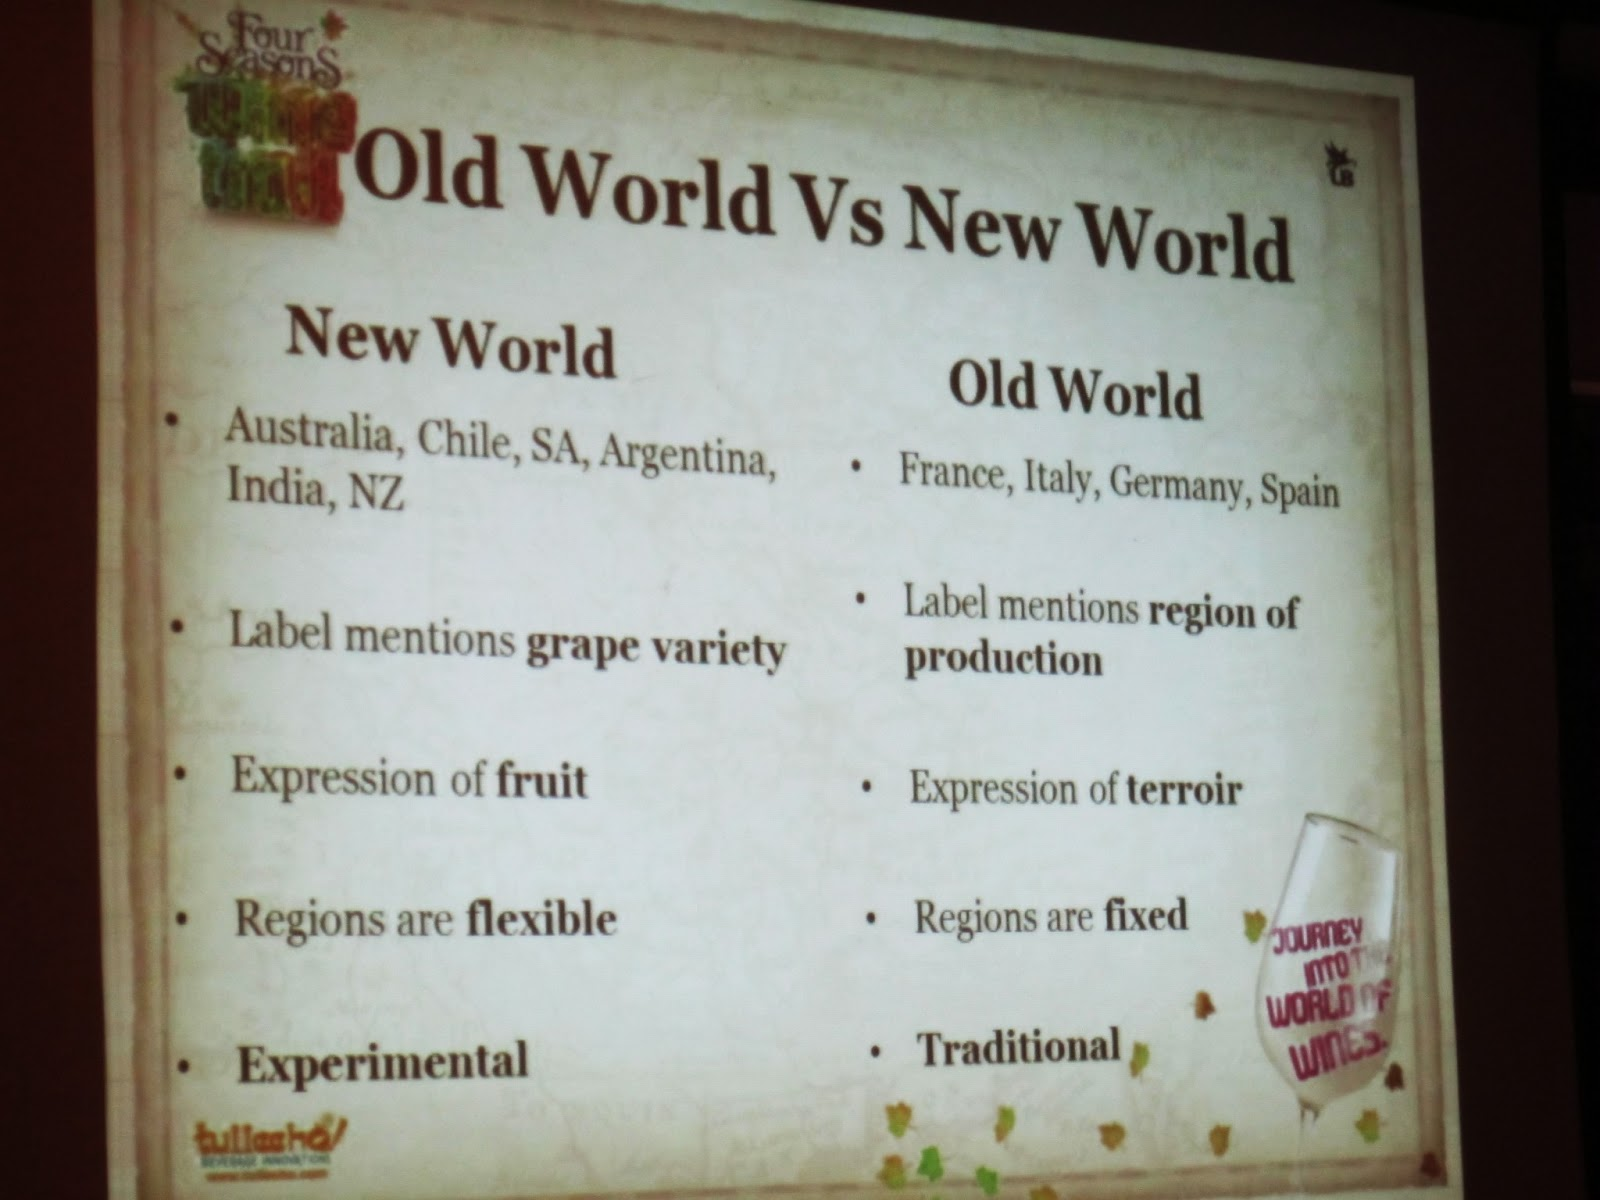 wine and old world wines The phrase connotes a distinction between these new world wines and those wines produced in old world countries with a long-established history of wine production .